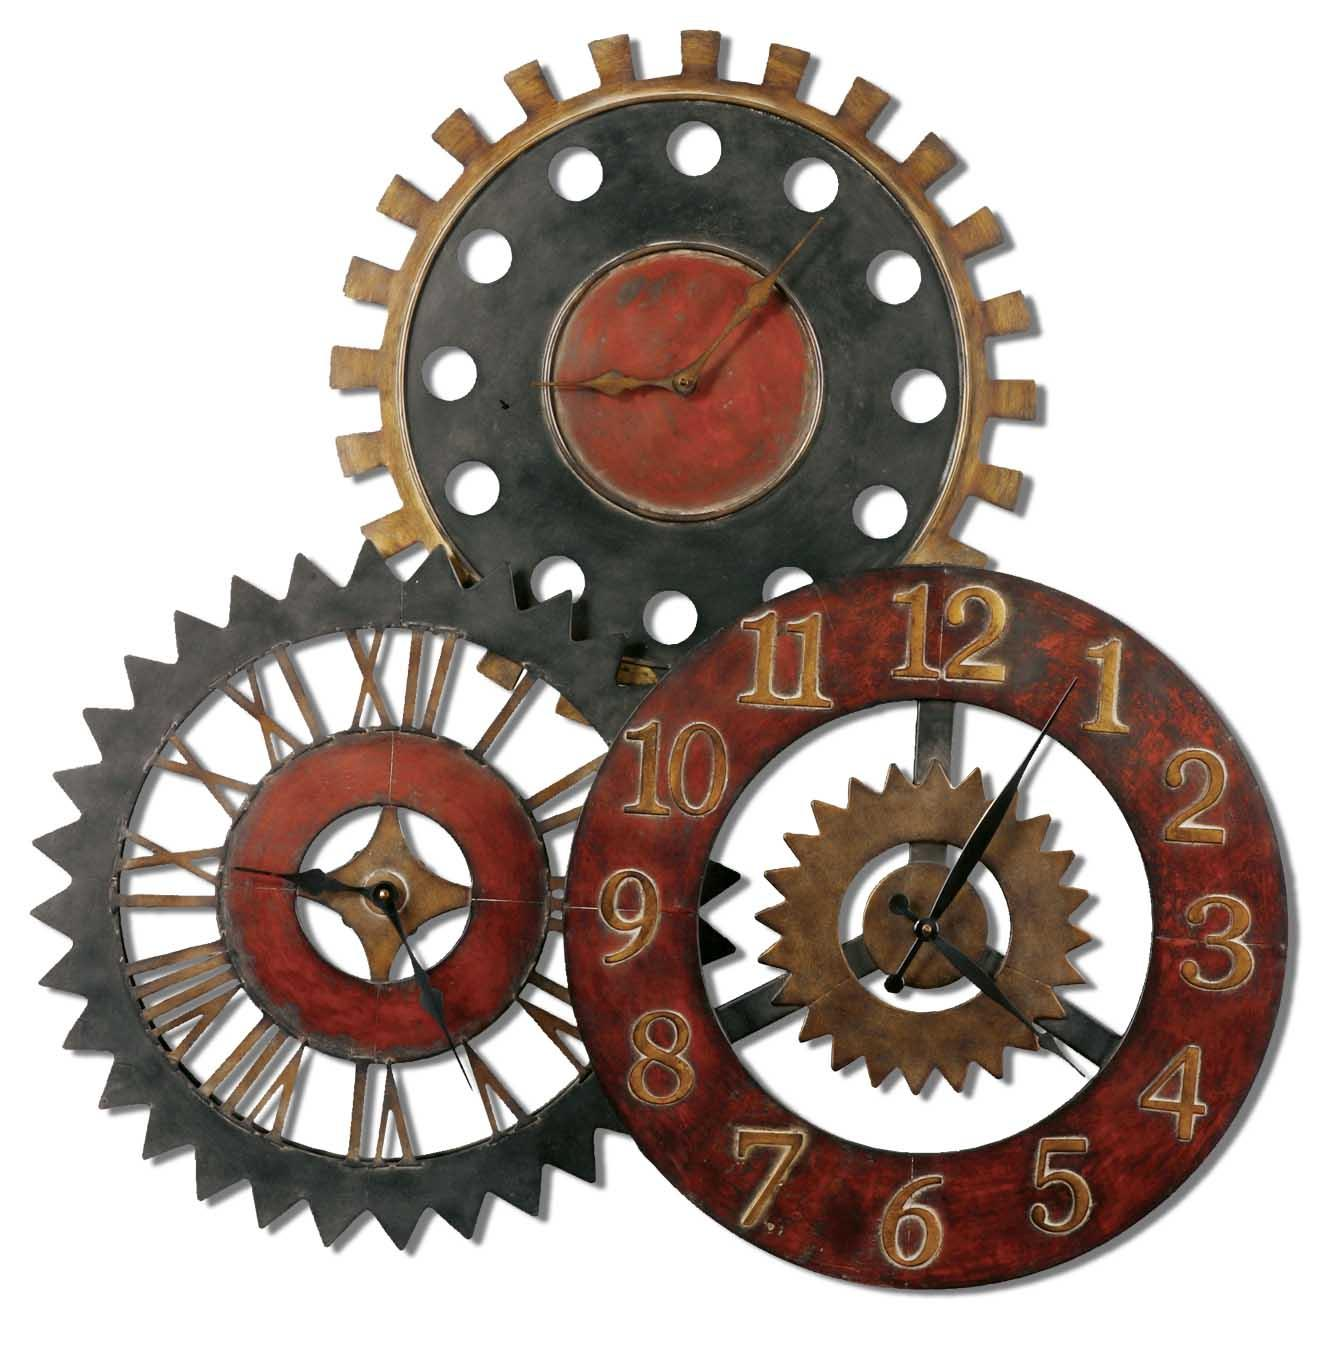 Uttermost Clocks Rusty Movements Clock - Item Number: 06762